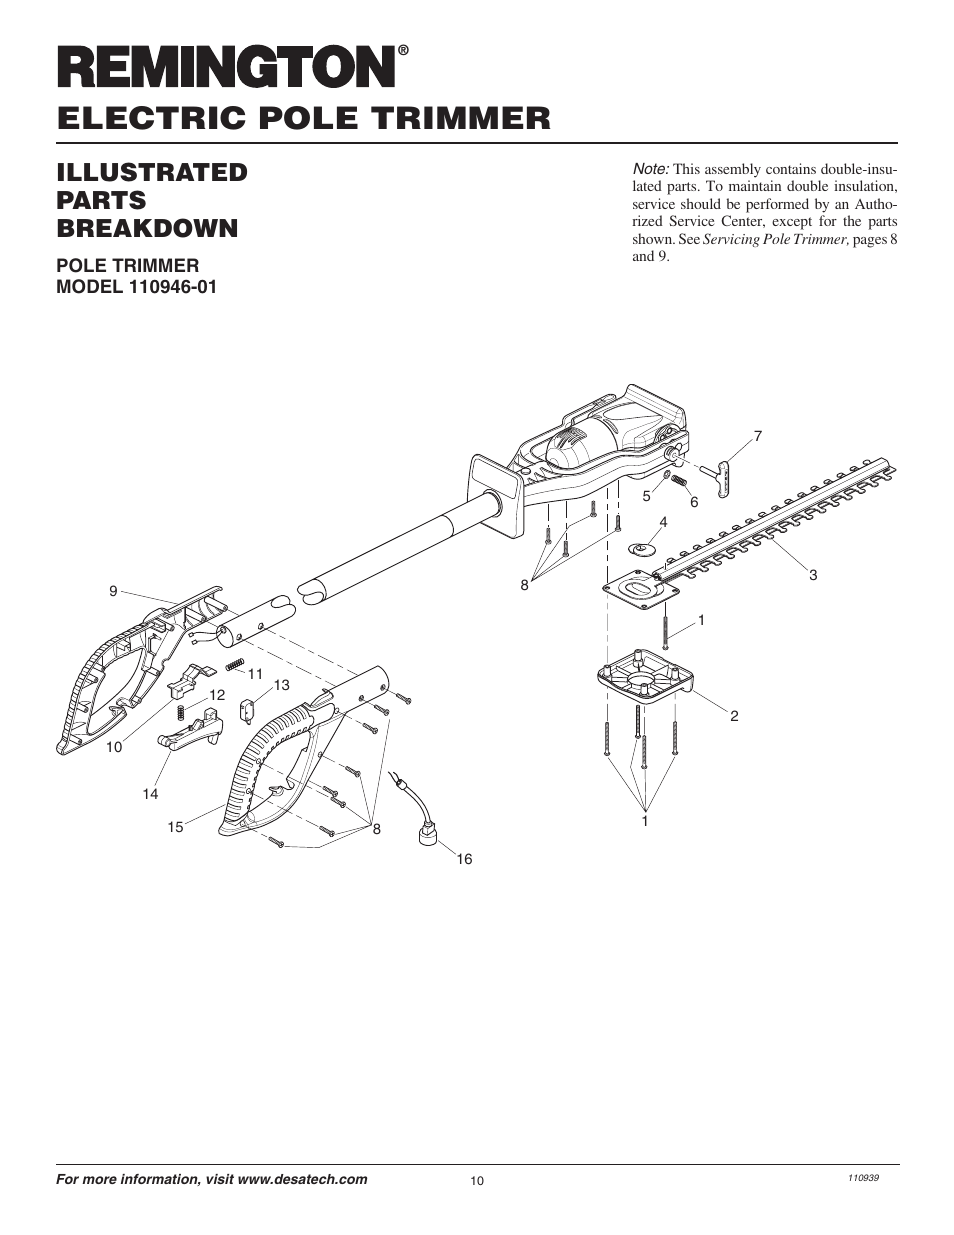 Electric pole trimmer, Illustrated parts breakdown